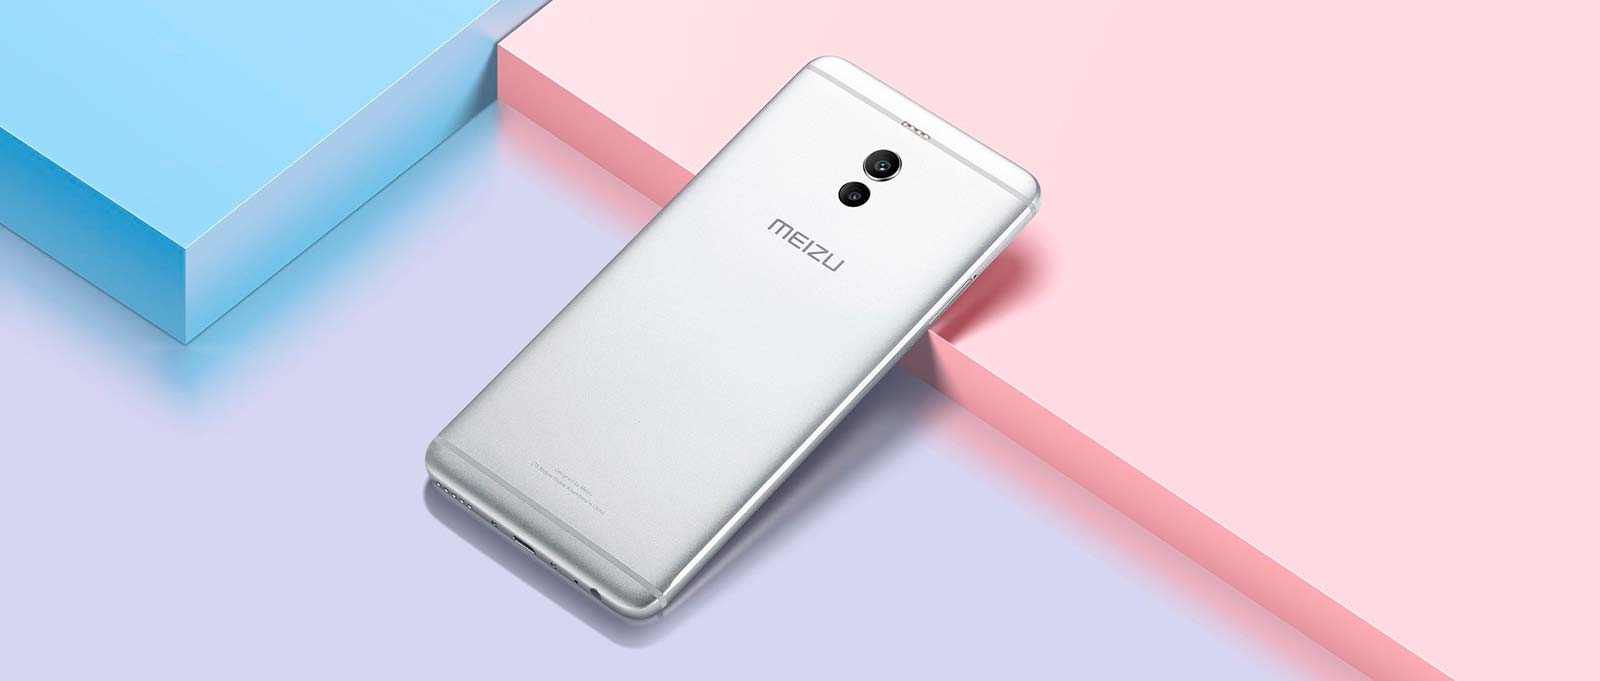 Новый фаблет Meizu N6 Note: процессор Qualcomm Snapdragon 625